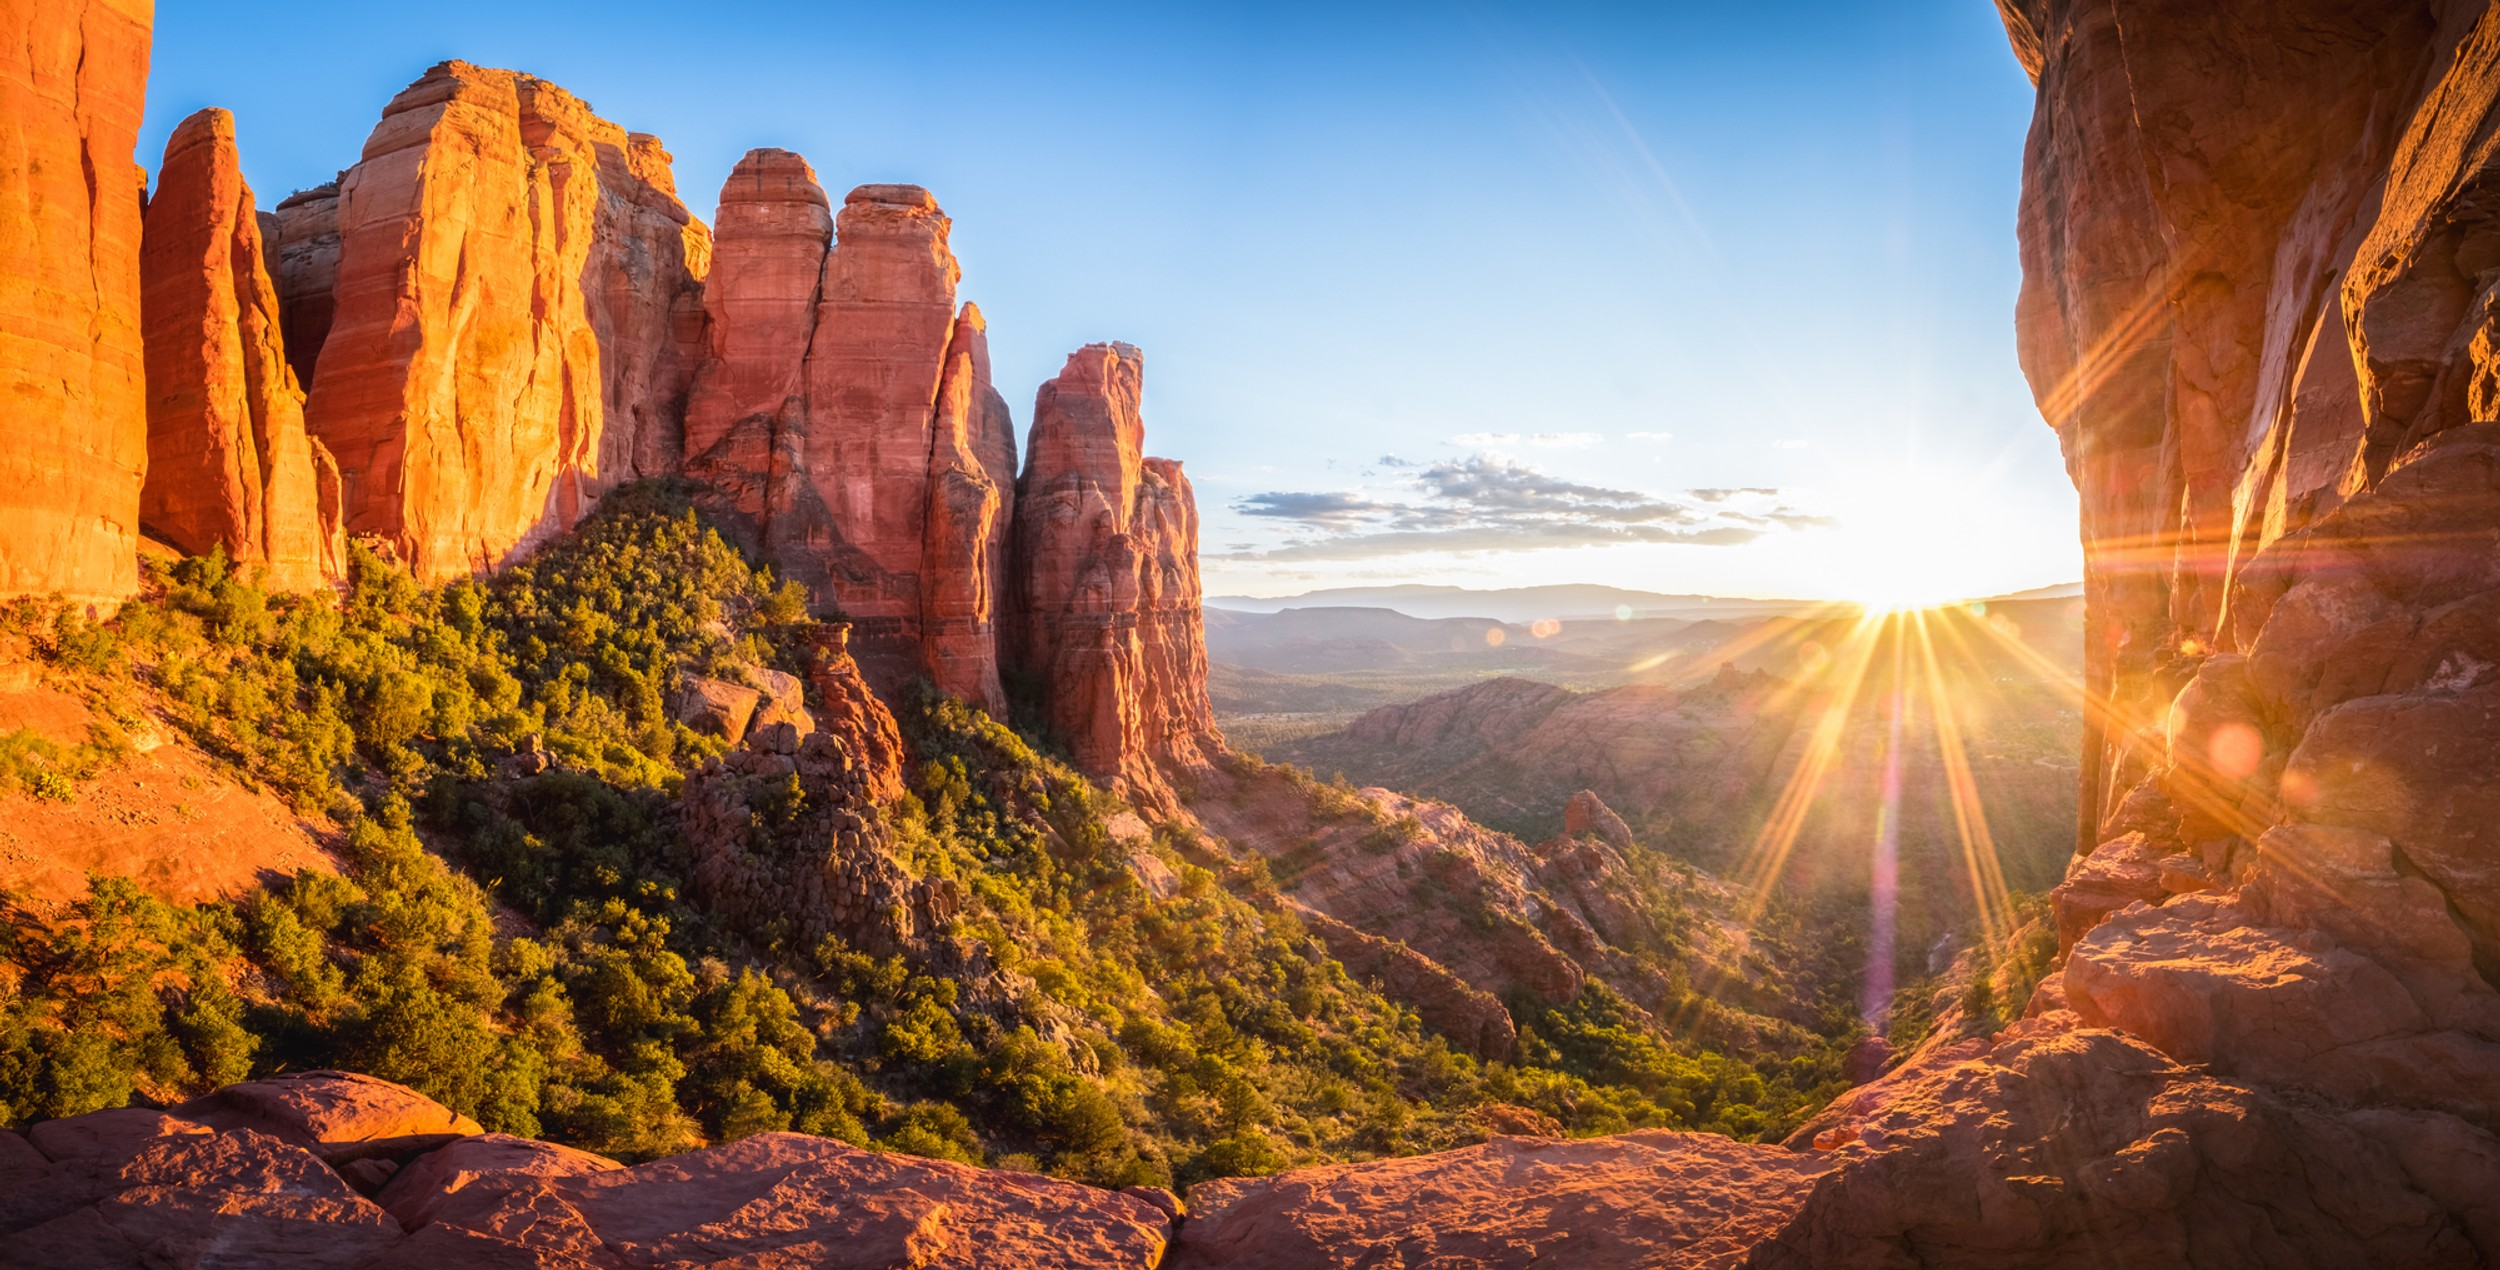 Sedona Travel and Concierge Service offering Custom Sedona Arizona Tour Packages